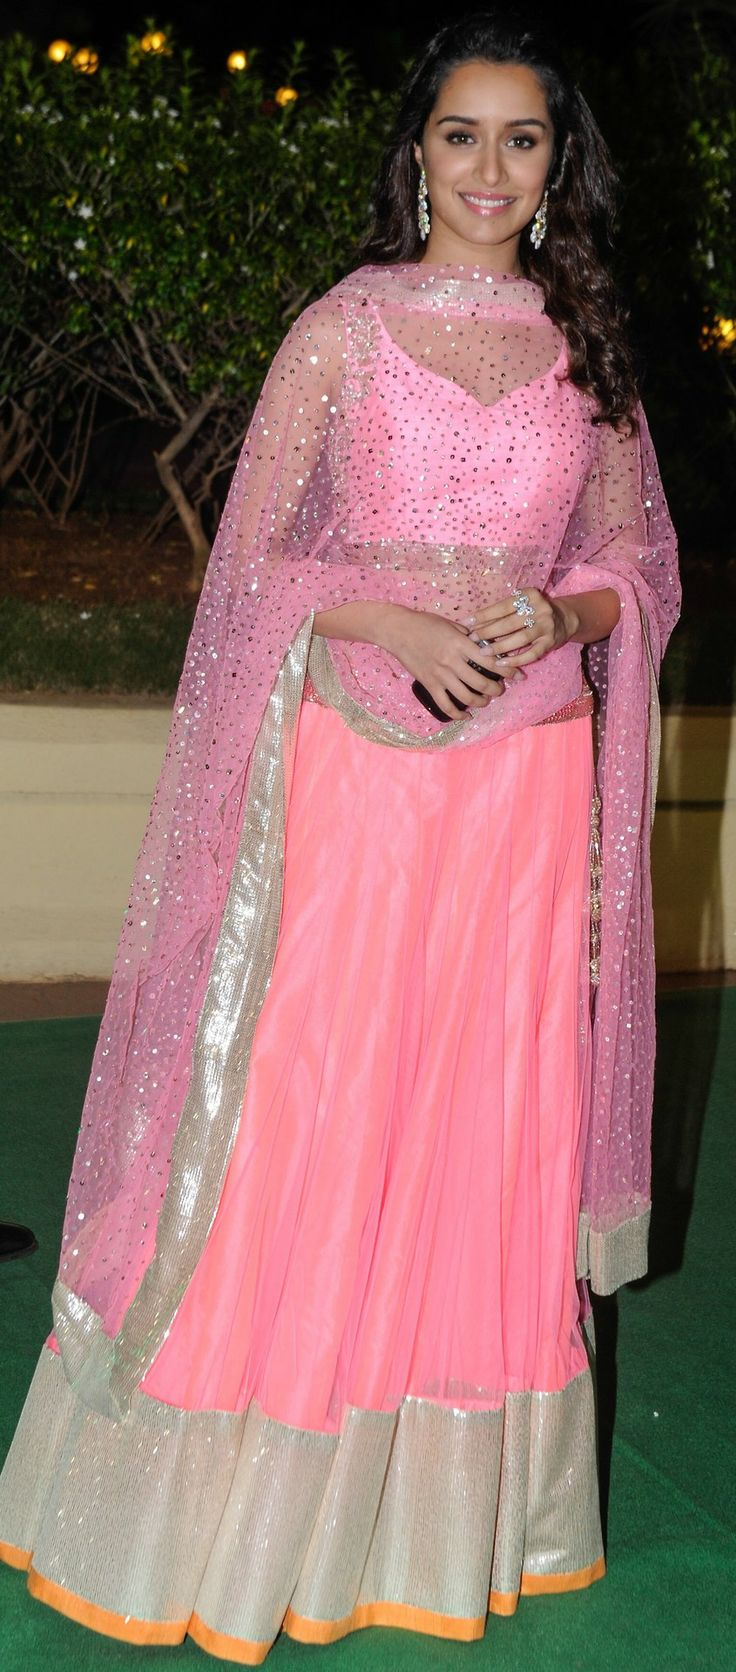 Shradda Kapoor in pink lehenga #lehenga #choli #indian #hp #shaadi #bridal #fashion #style #desi #designer #blouse #wedding #gorgeous #beautiful